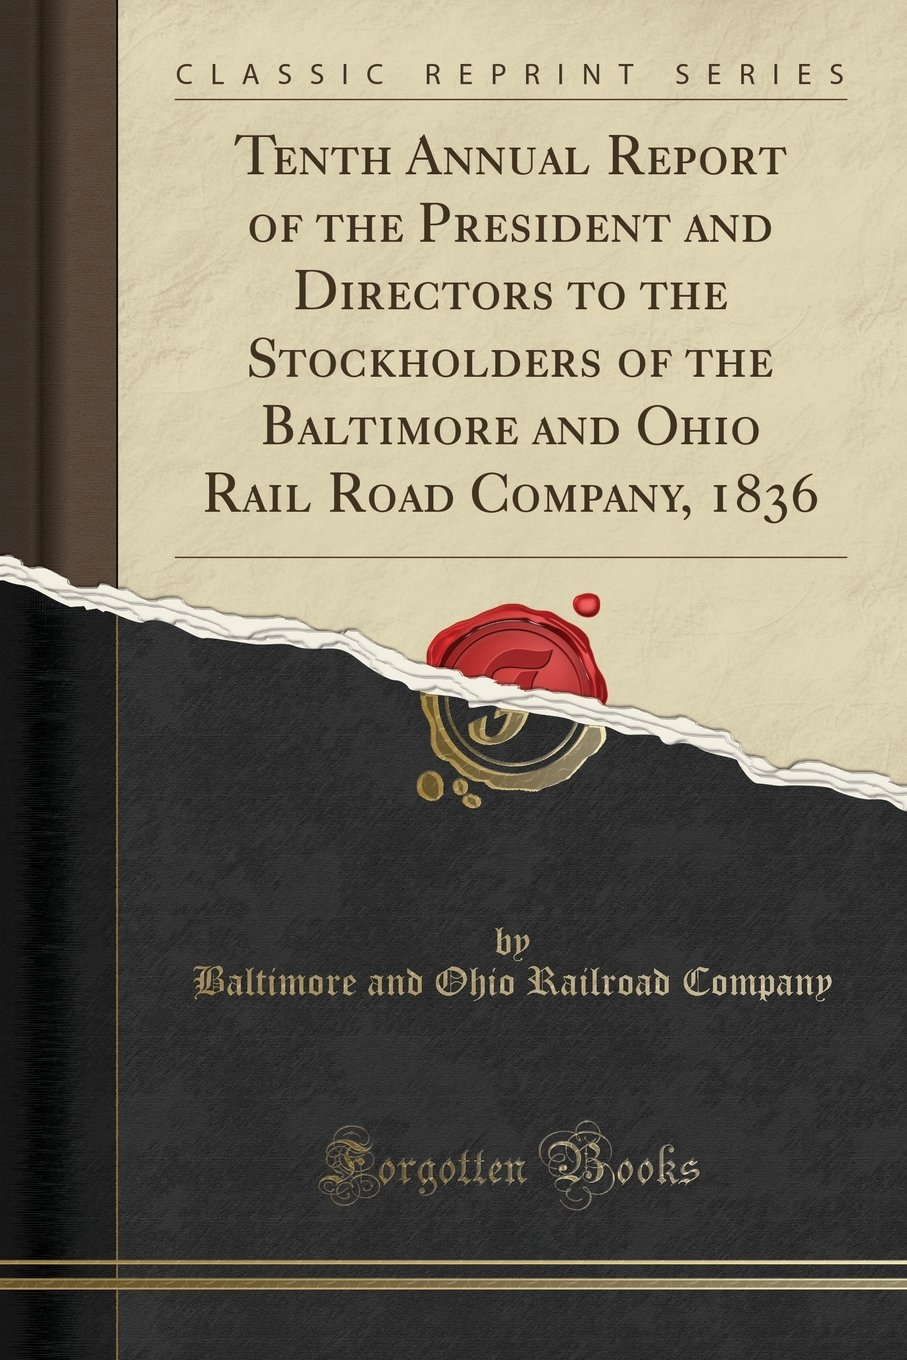 Read Online Tenth Annual Report of the President and Directors to the Stockholders of the Baltimore and Ohio Rail Road Company, 1836 (Classic Reprint) PDF